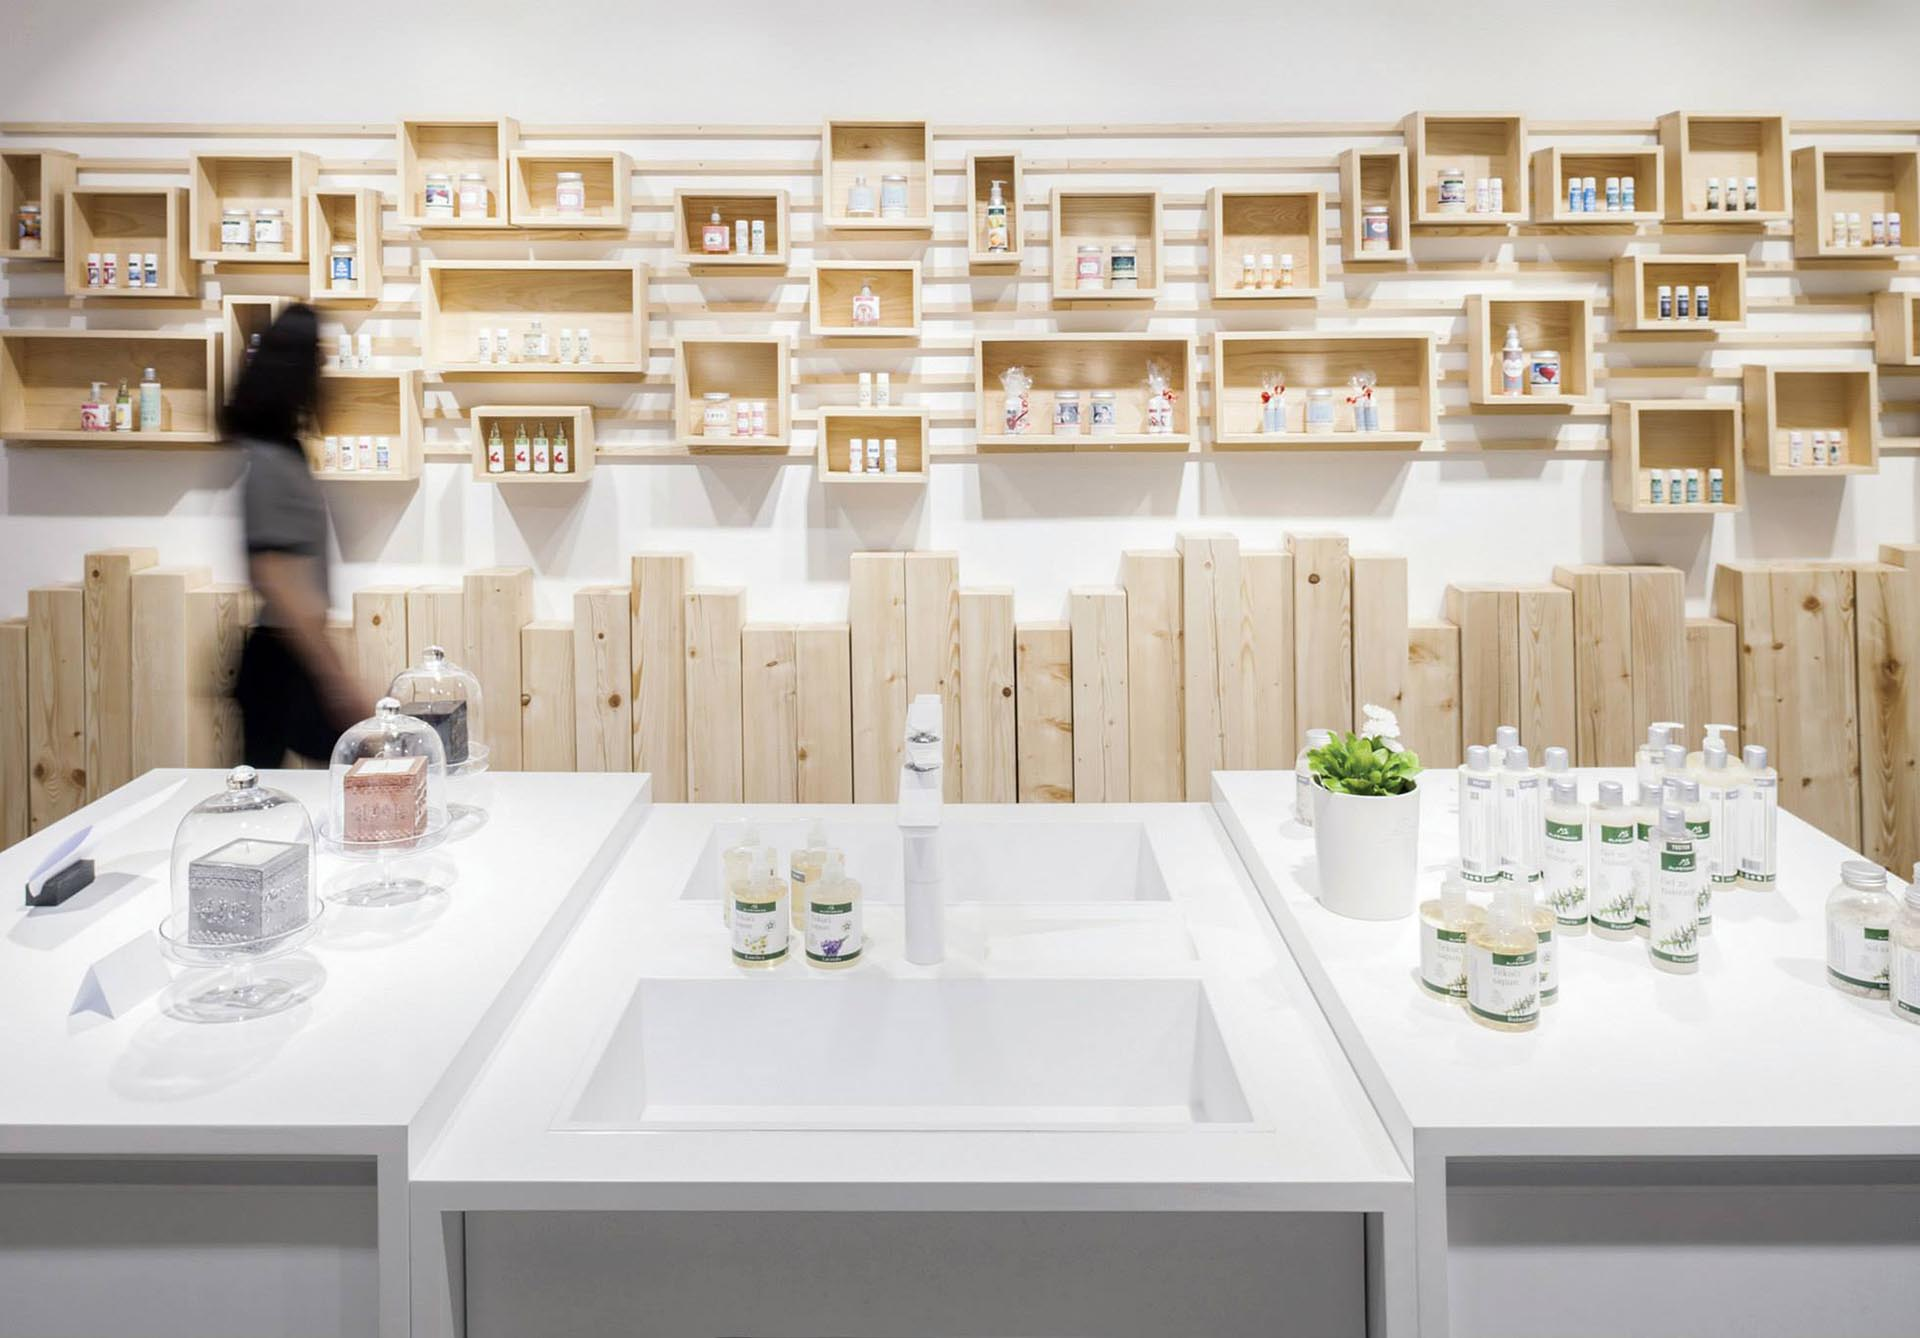 A french cleat shelving system was created for a retail store.